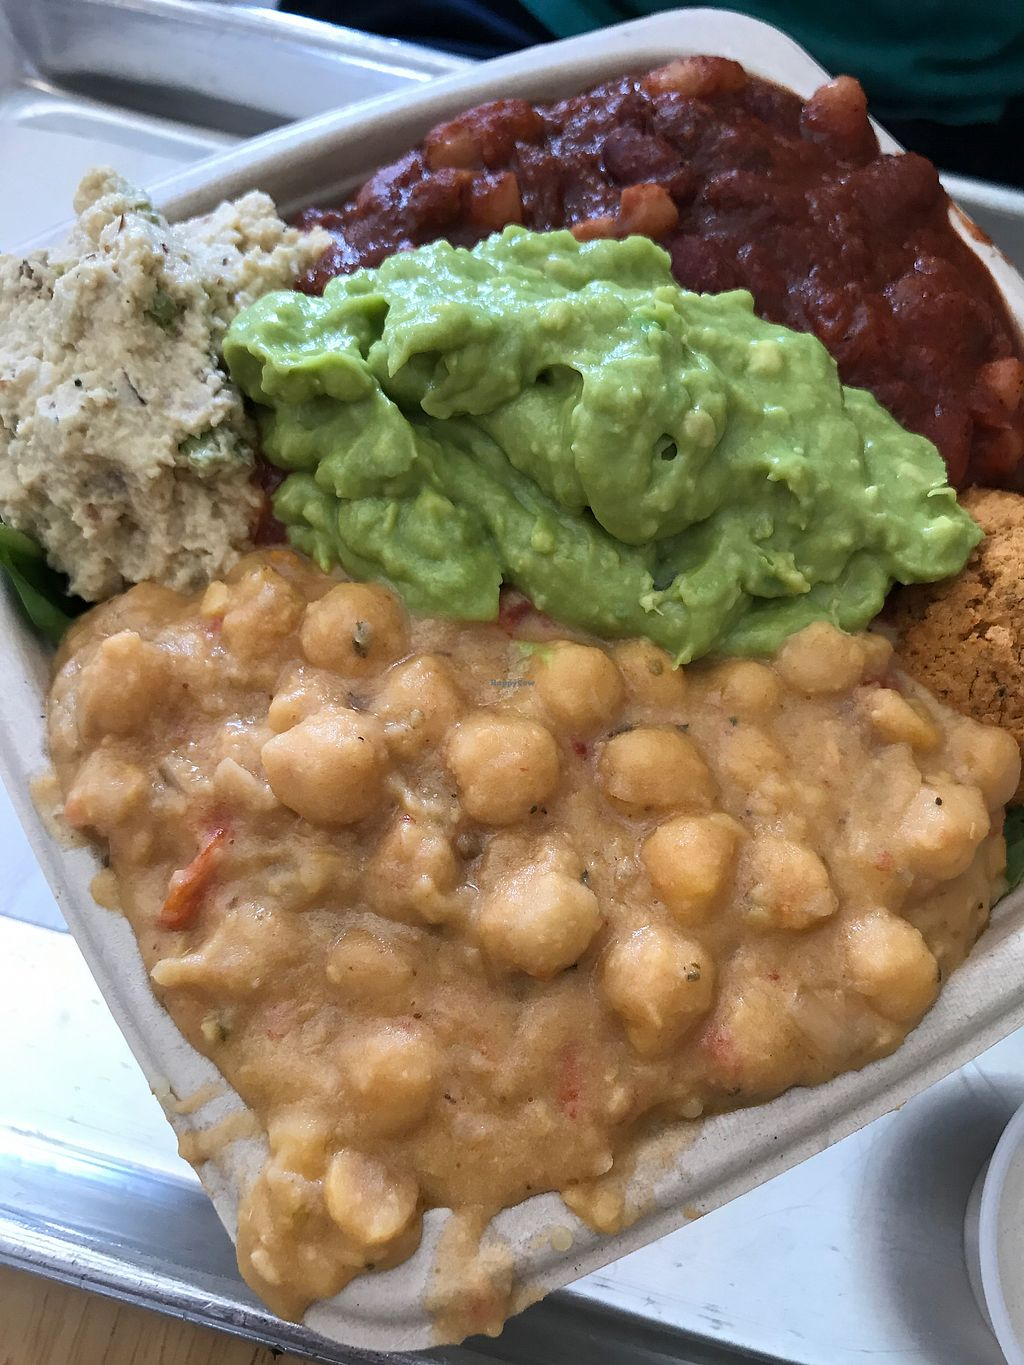 """Photo of Plant Wise  by <a href=""""/members/profile/allissa18"""">allissa18</a> <br/>super hero sampler with tomato chickpea, avo mash, bean chili, falafel, veggie tuna on a bed of spinach and quinoa. soo big and filling!  <br/> July 3, 2017  - <a href='/contact/abuse/image/66995/276431'>Report</a>"""